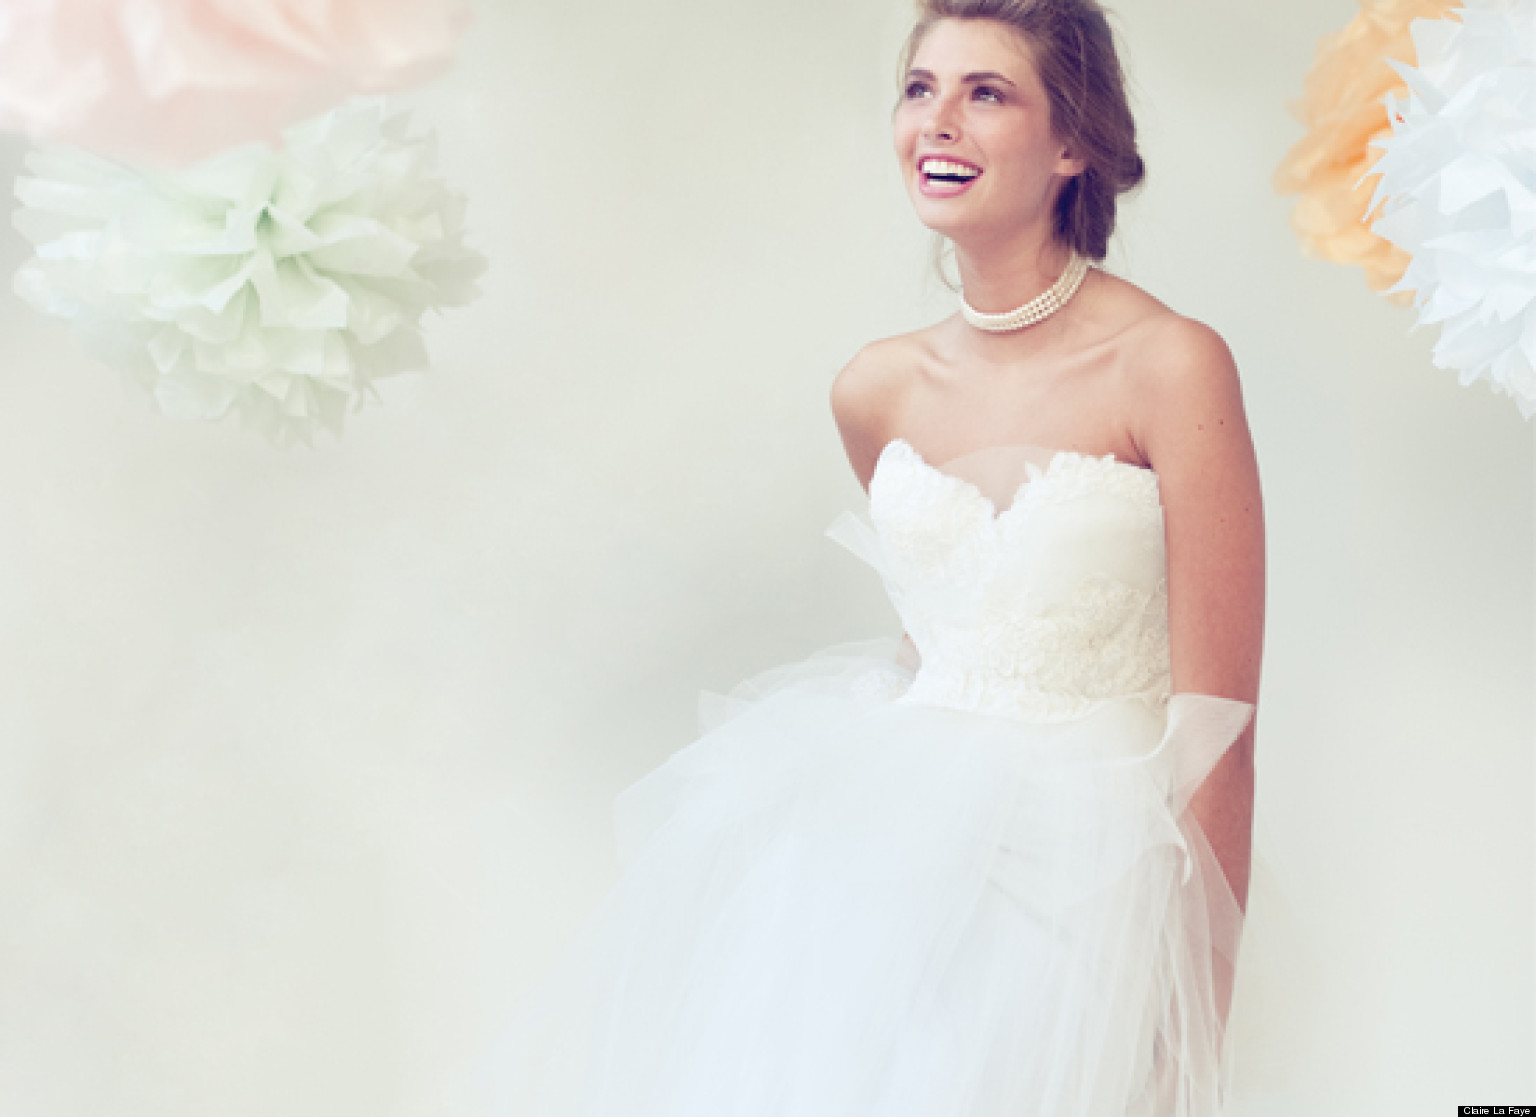 Unique Wedding Dresses From Etsy That Are Worth The Big